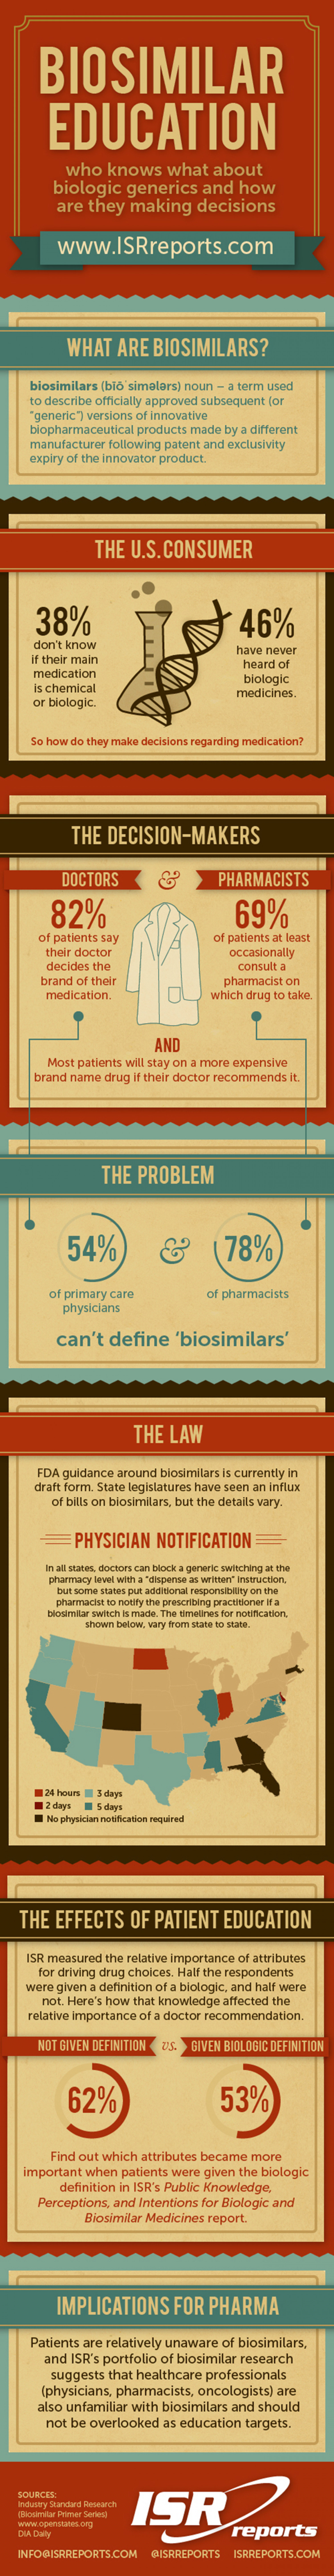 Biosimilar Education: Who know what about biologic generics and how are they making decisions Infographic